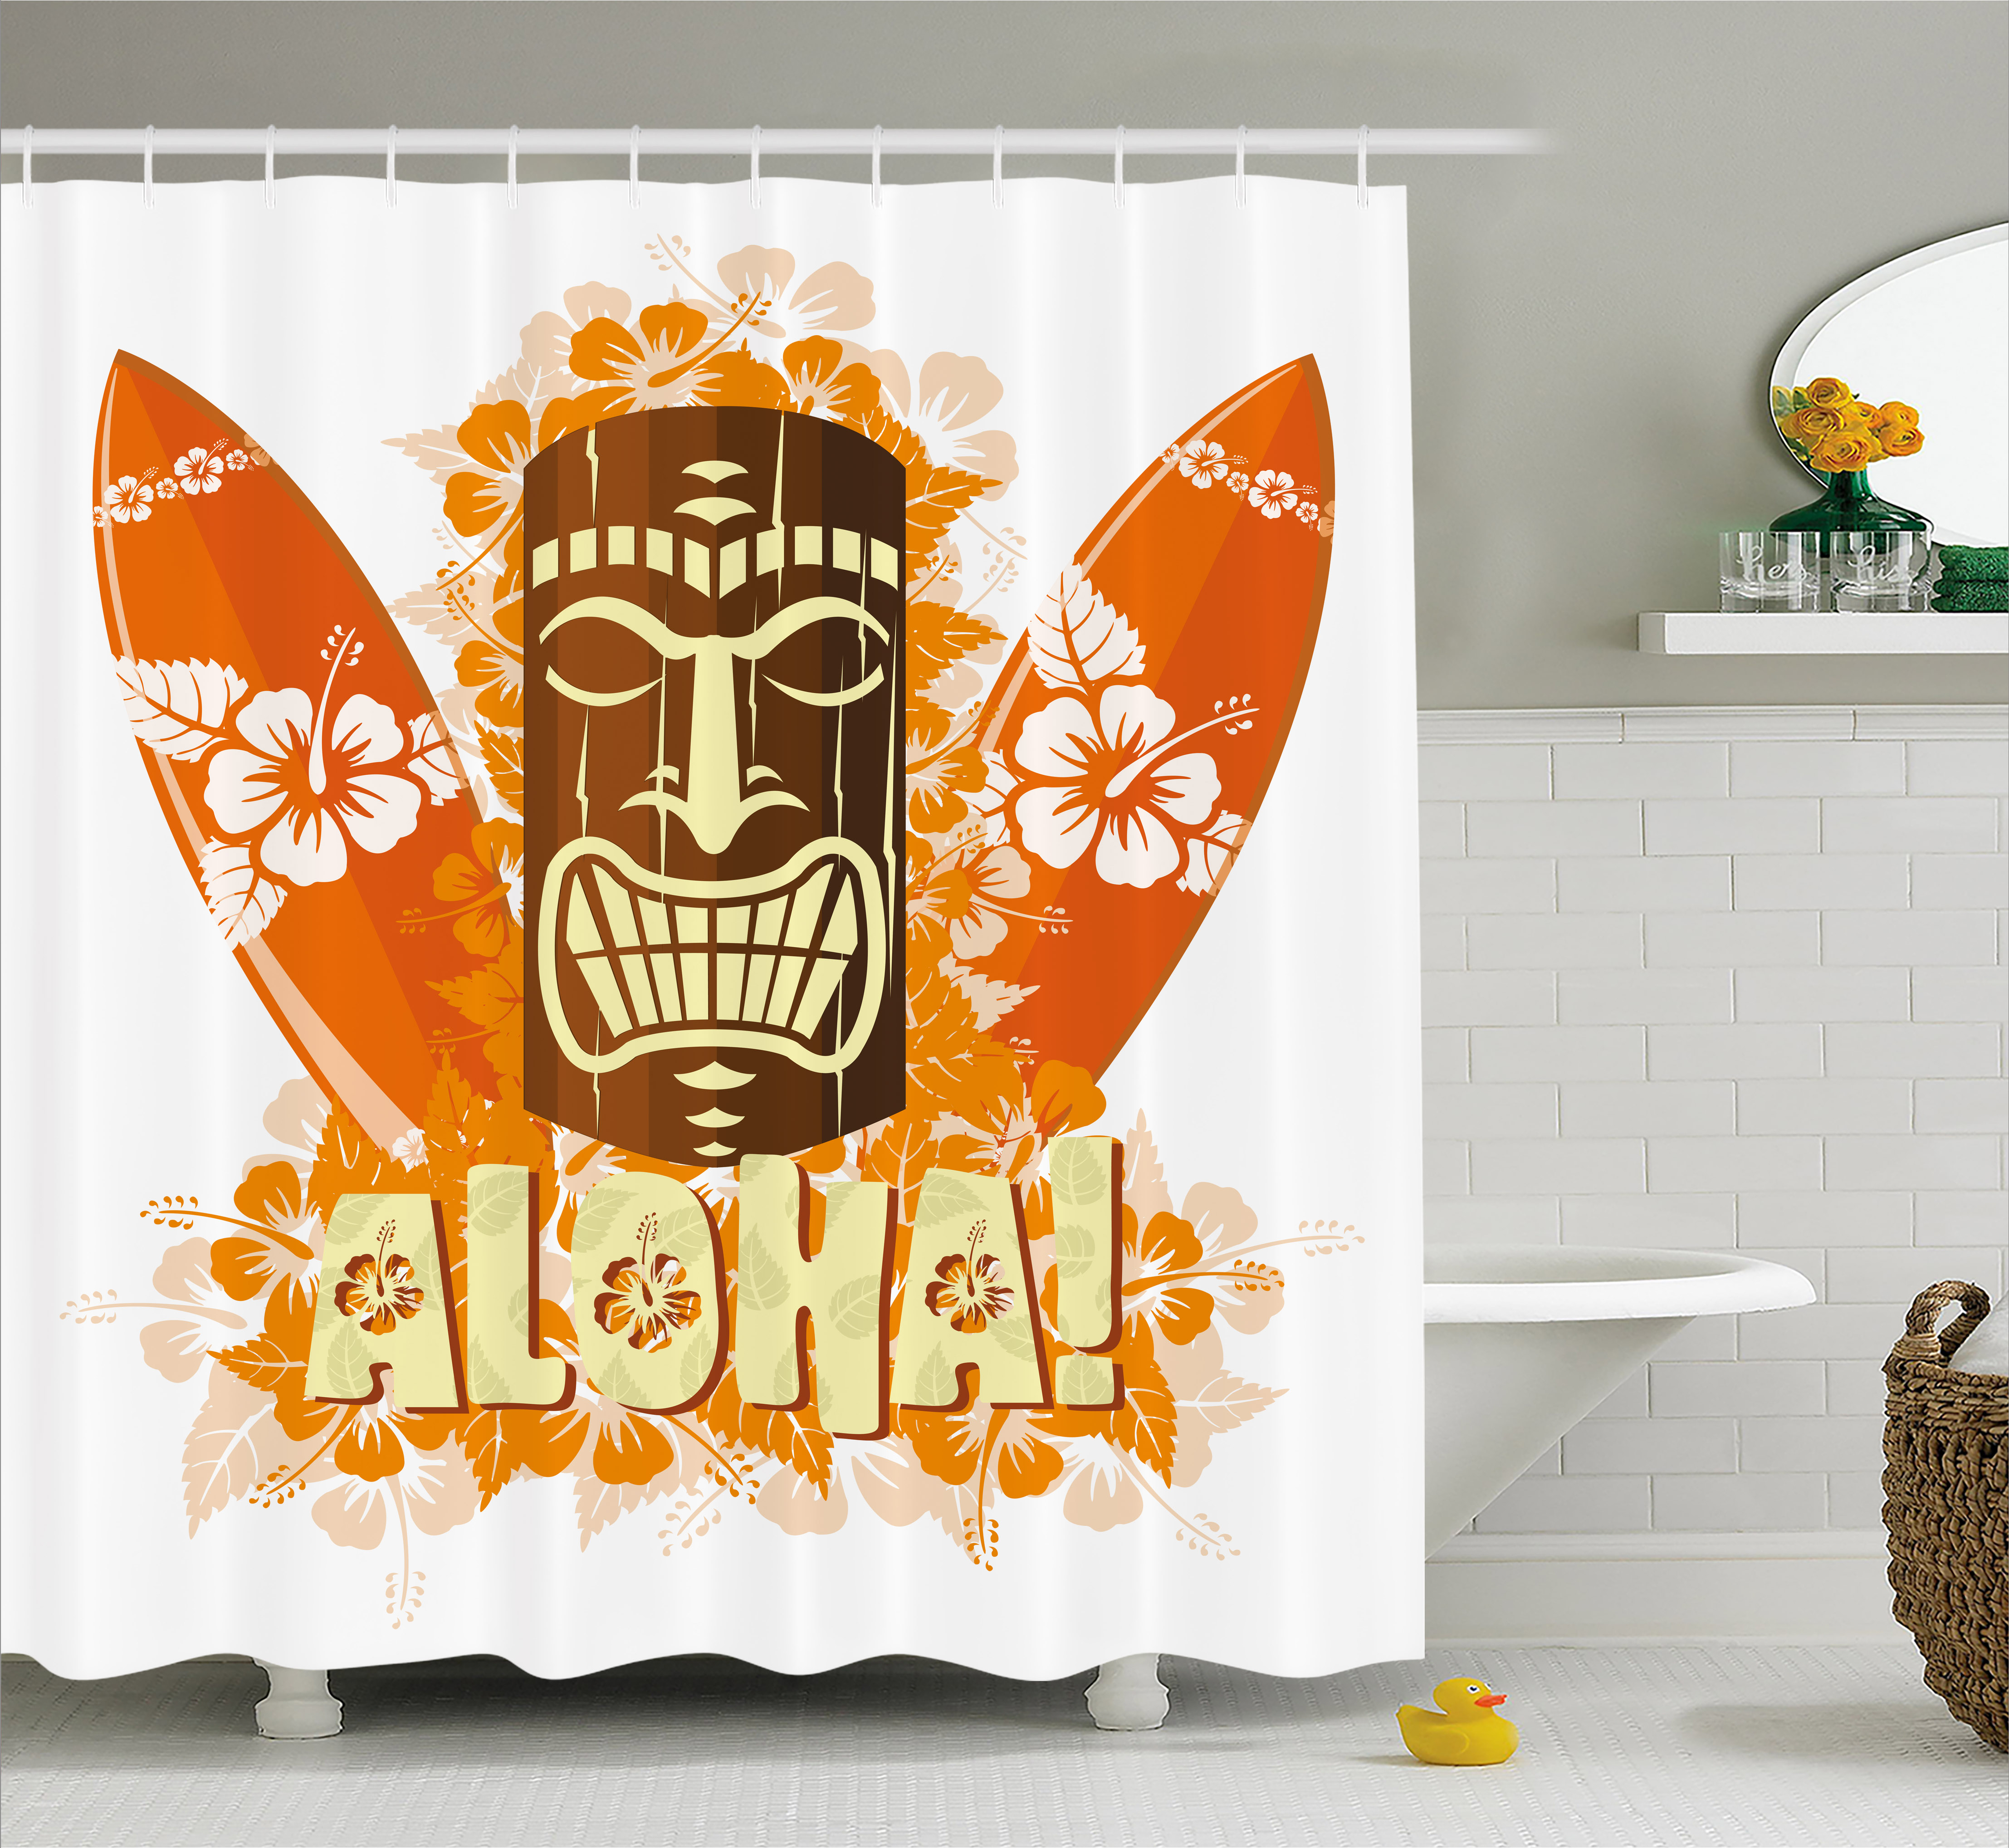 Tiki Bar Decor Shower Curtain, Hibiscus Flora Burst Orange Surfboards Aloha  Tropical Summer, Fabric